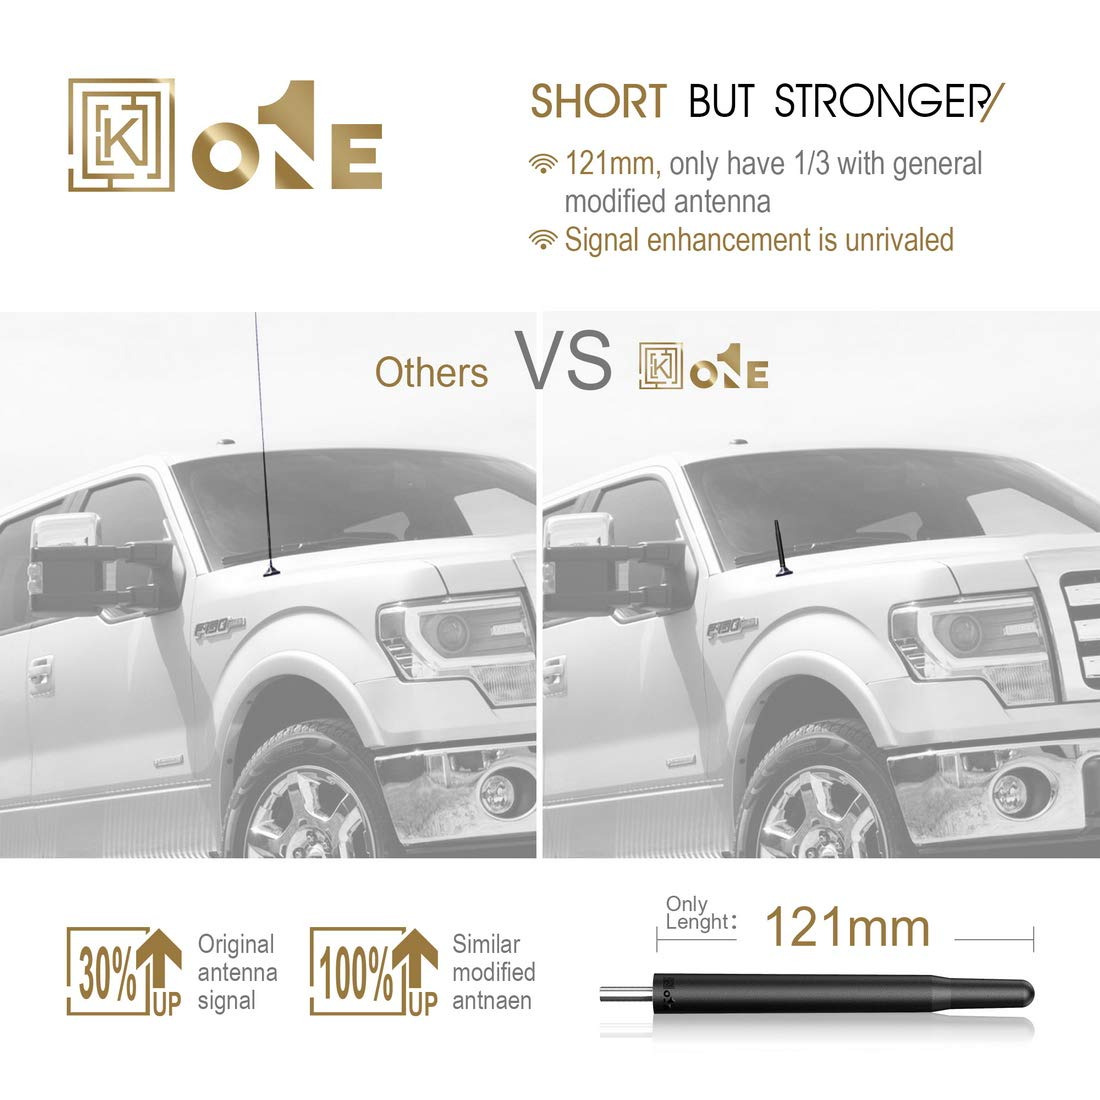 KEYO1E 4.8 AM//FM Radio Stubby Antenna Short Replacement for 2009-2020 Dodge RAM Trucks